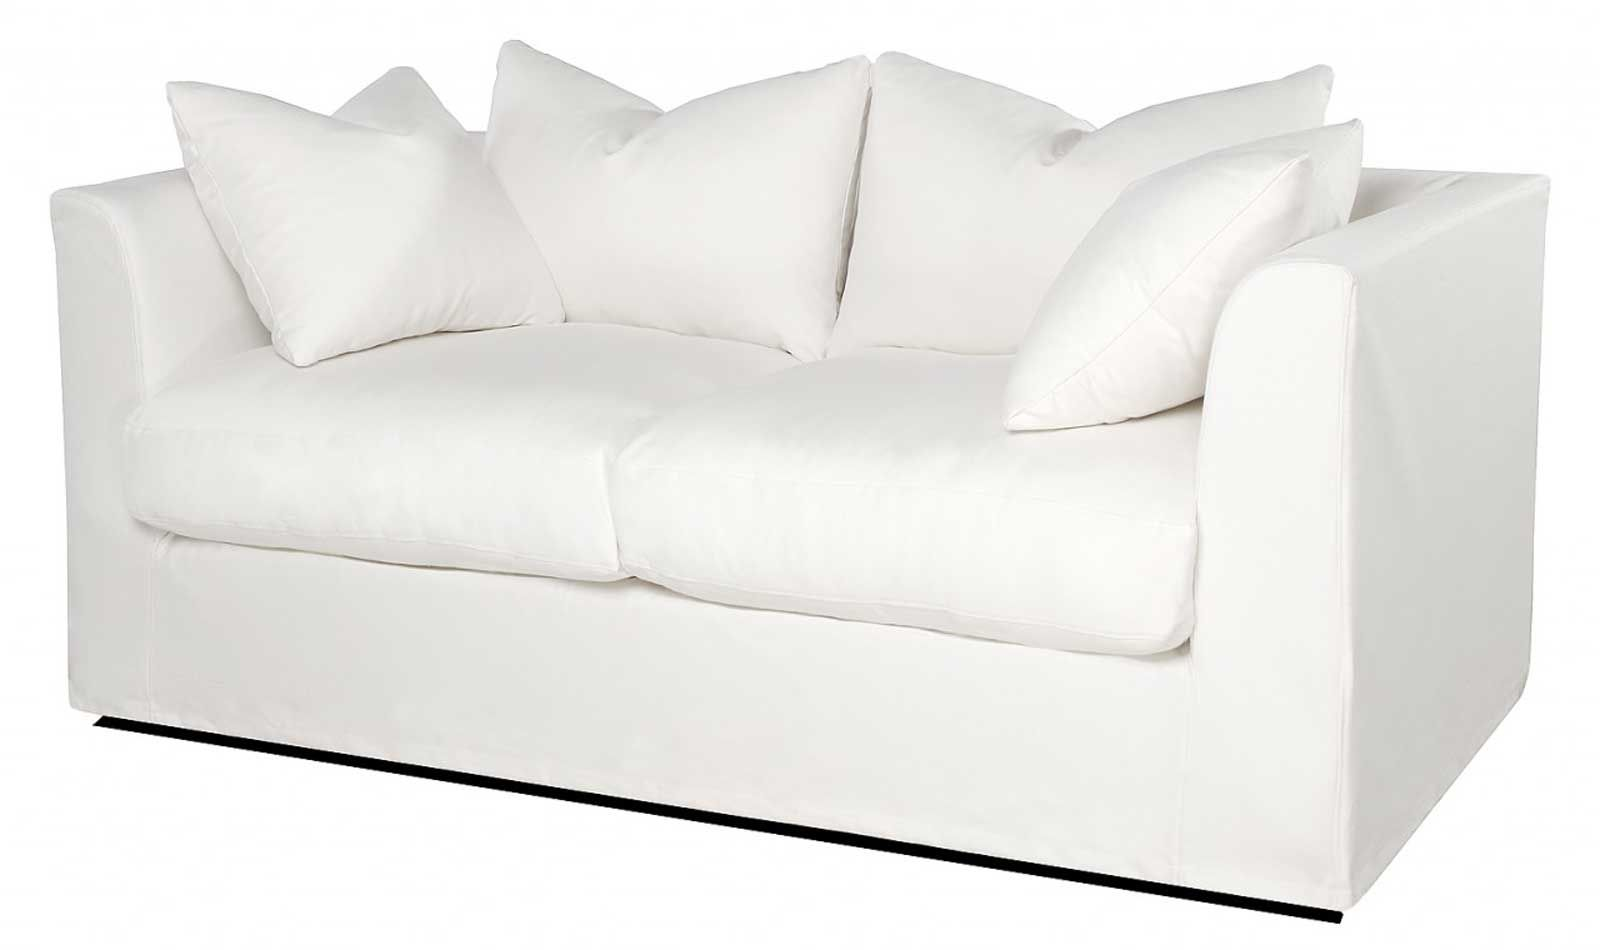 Upholstery White Sleeper Sofas Sectional with Slipcovers ...